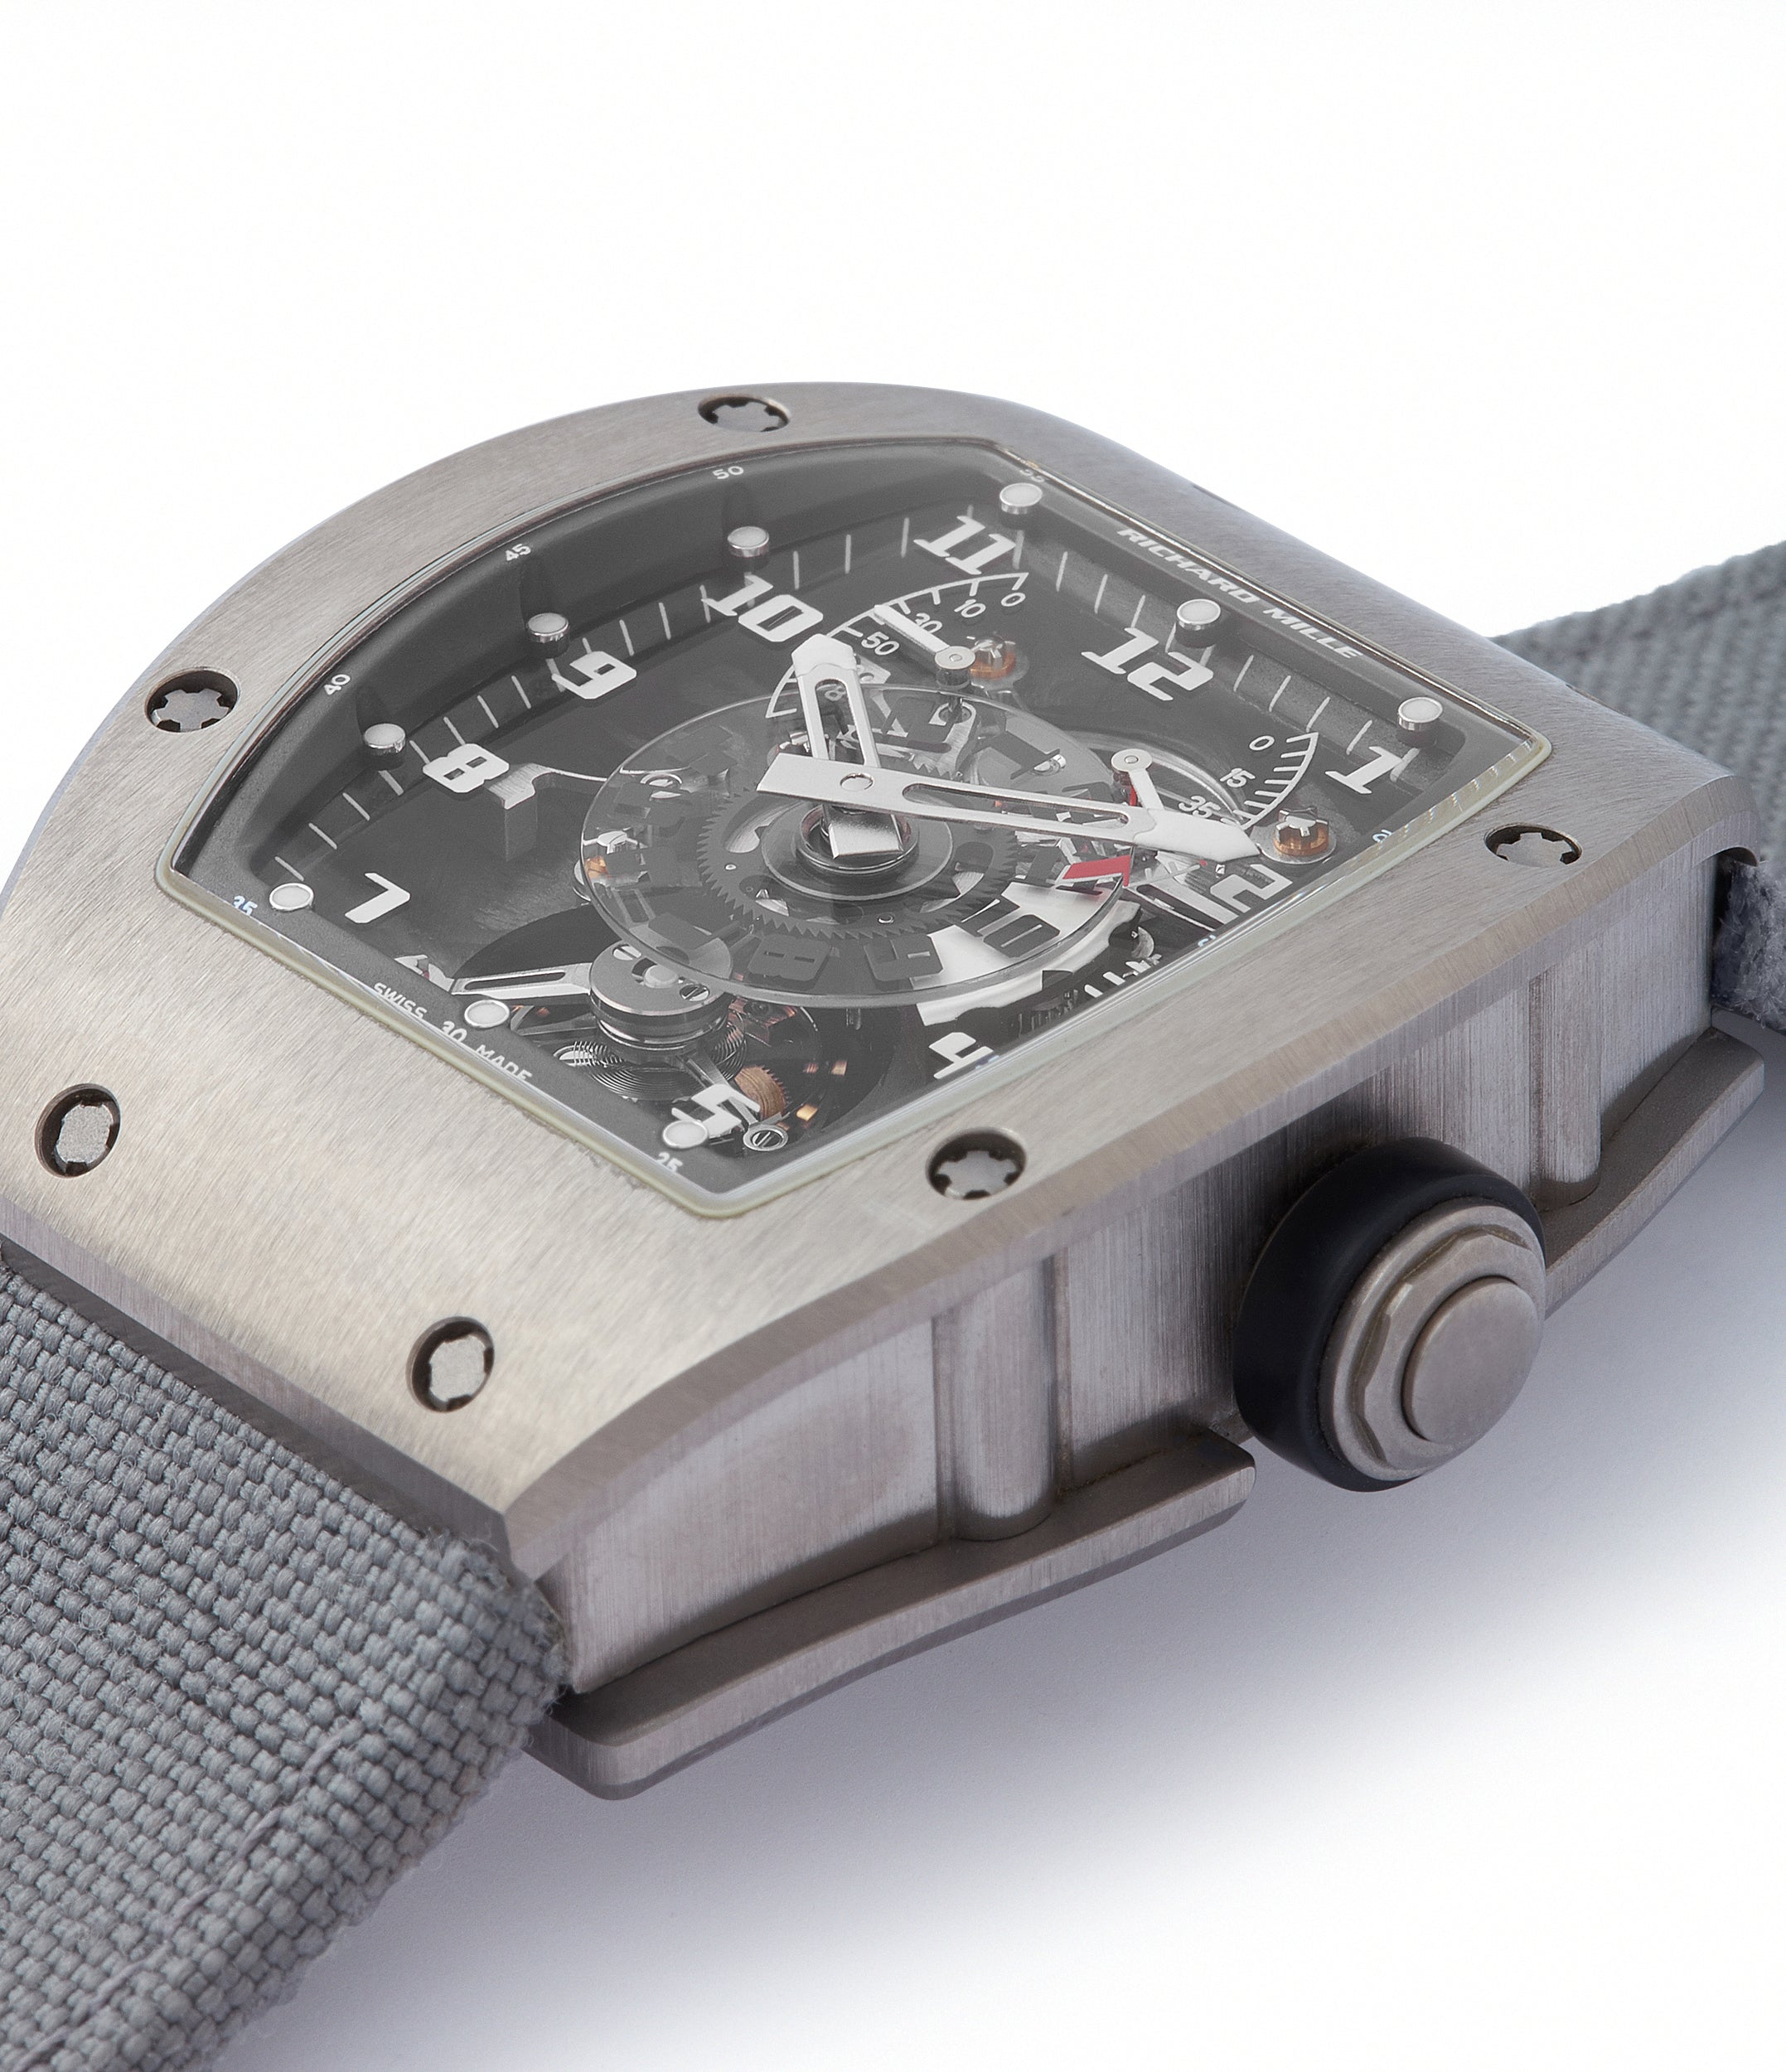 for sale Richard Mille RM003-V2 titanium tourbillon dual-time pre-owned rare independent watchmaker sports traveller watch for sale online at A Collected Man London UK specialist of rare watches